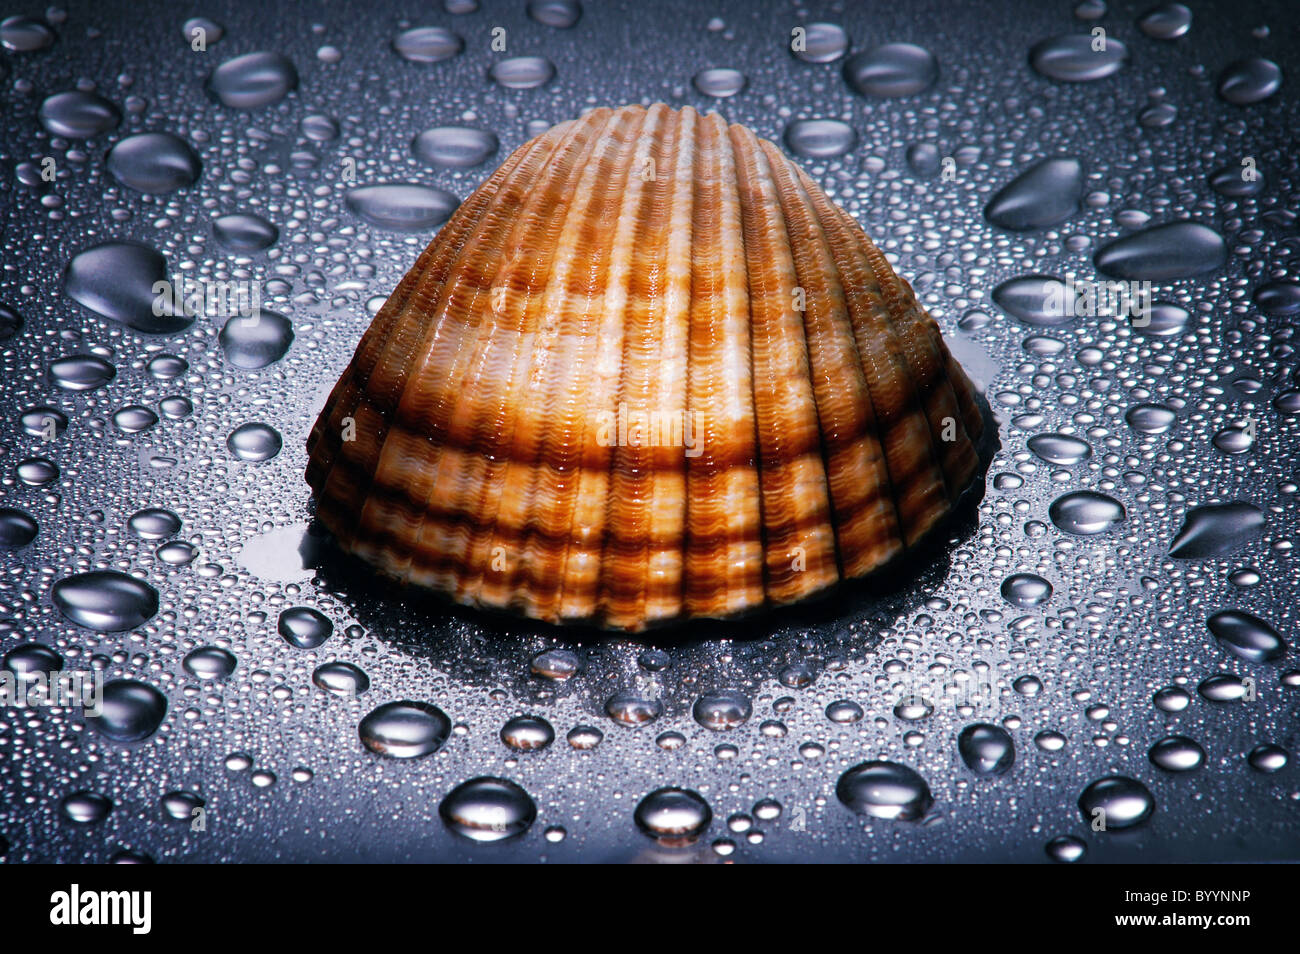 Seashell , water droplets , dramatic lighting , close up - Stock Image